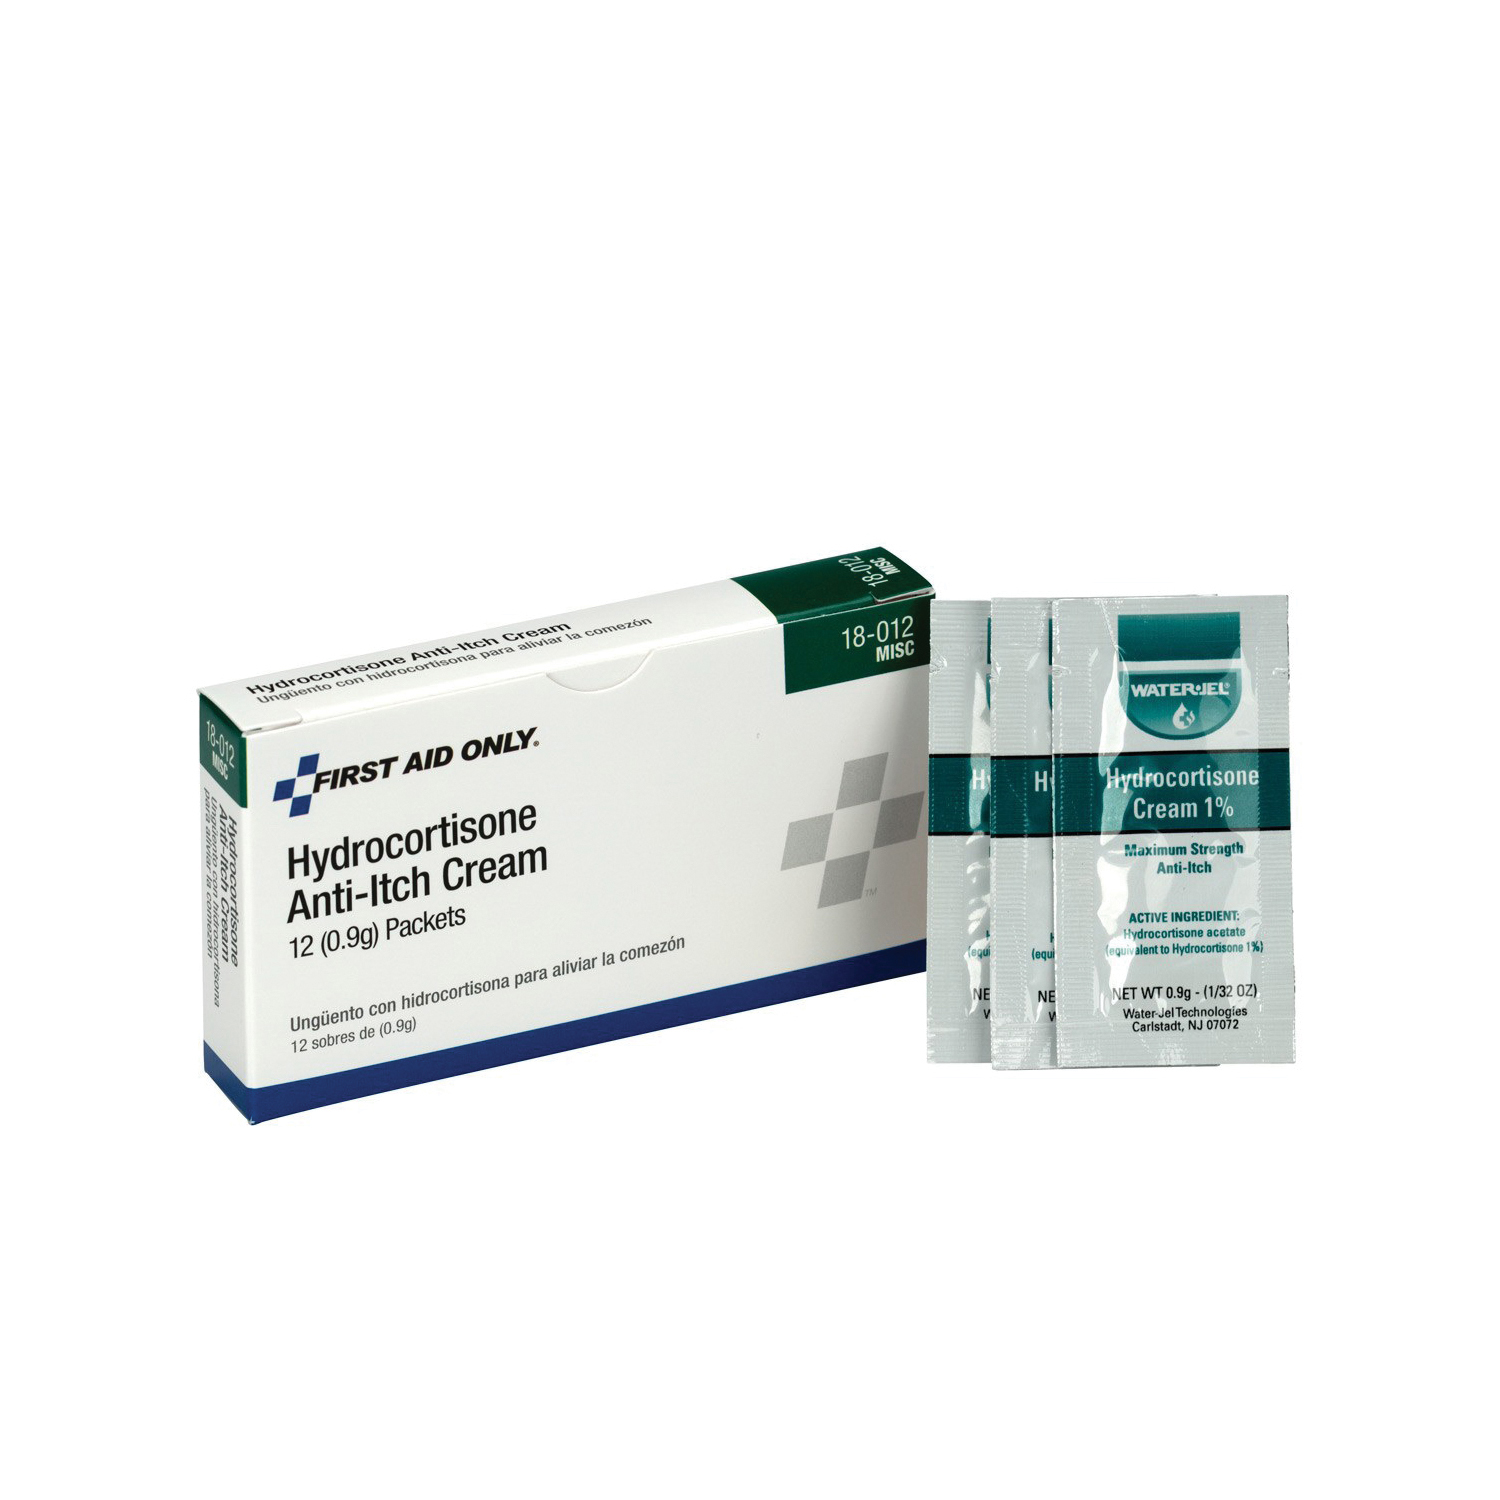 First Aid Only® 18-012 Hydrocortisone Cream, Unit Dose Pack Packing